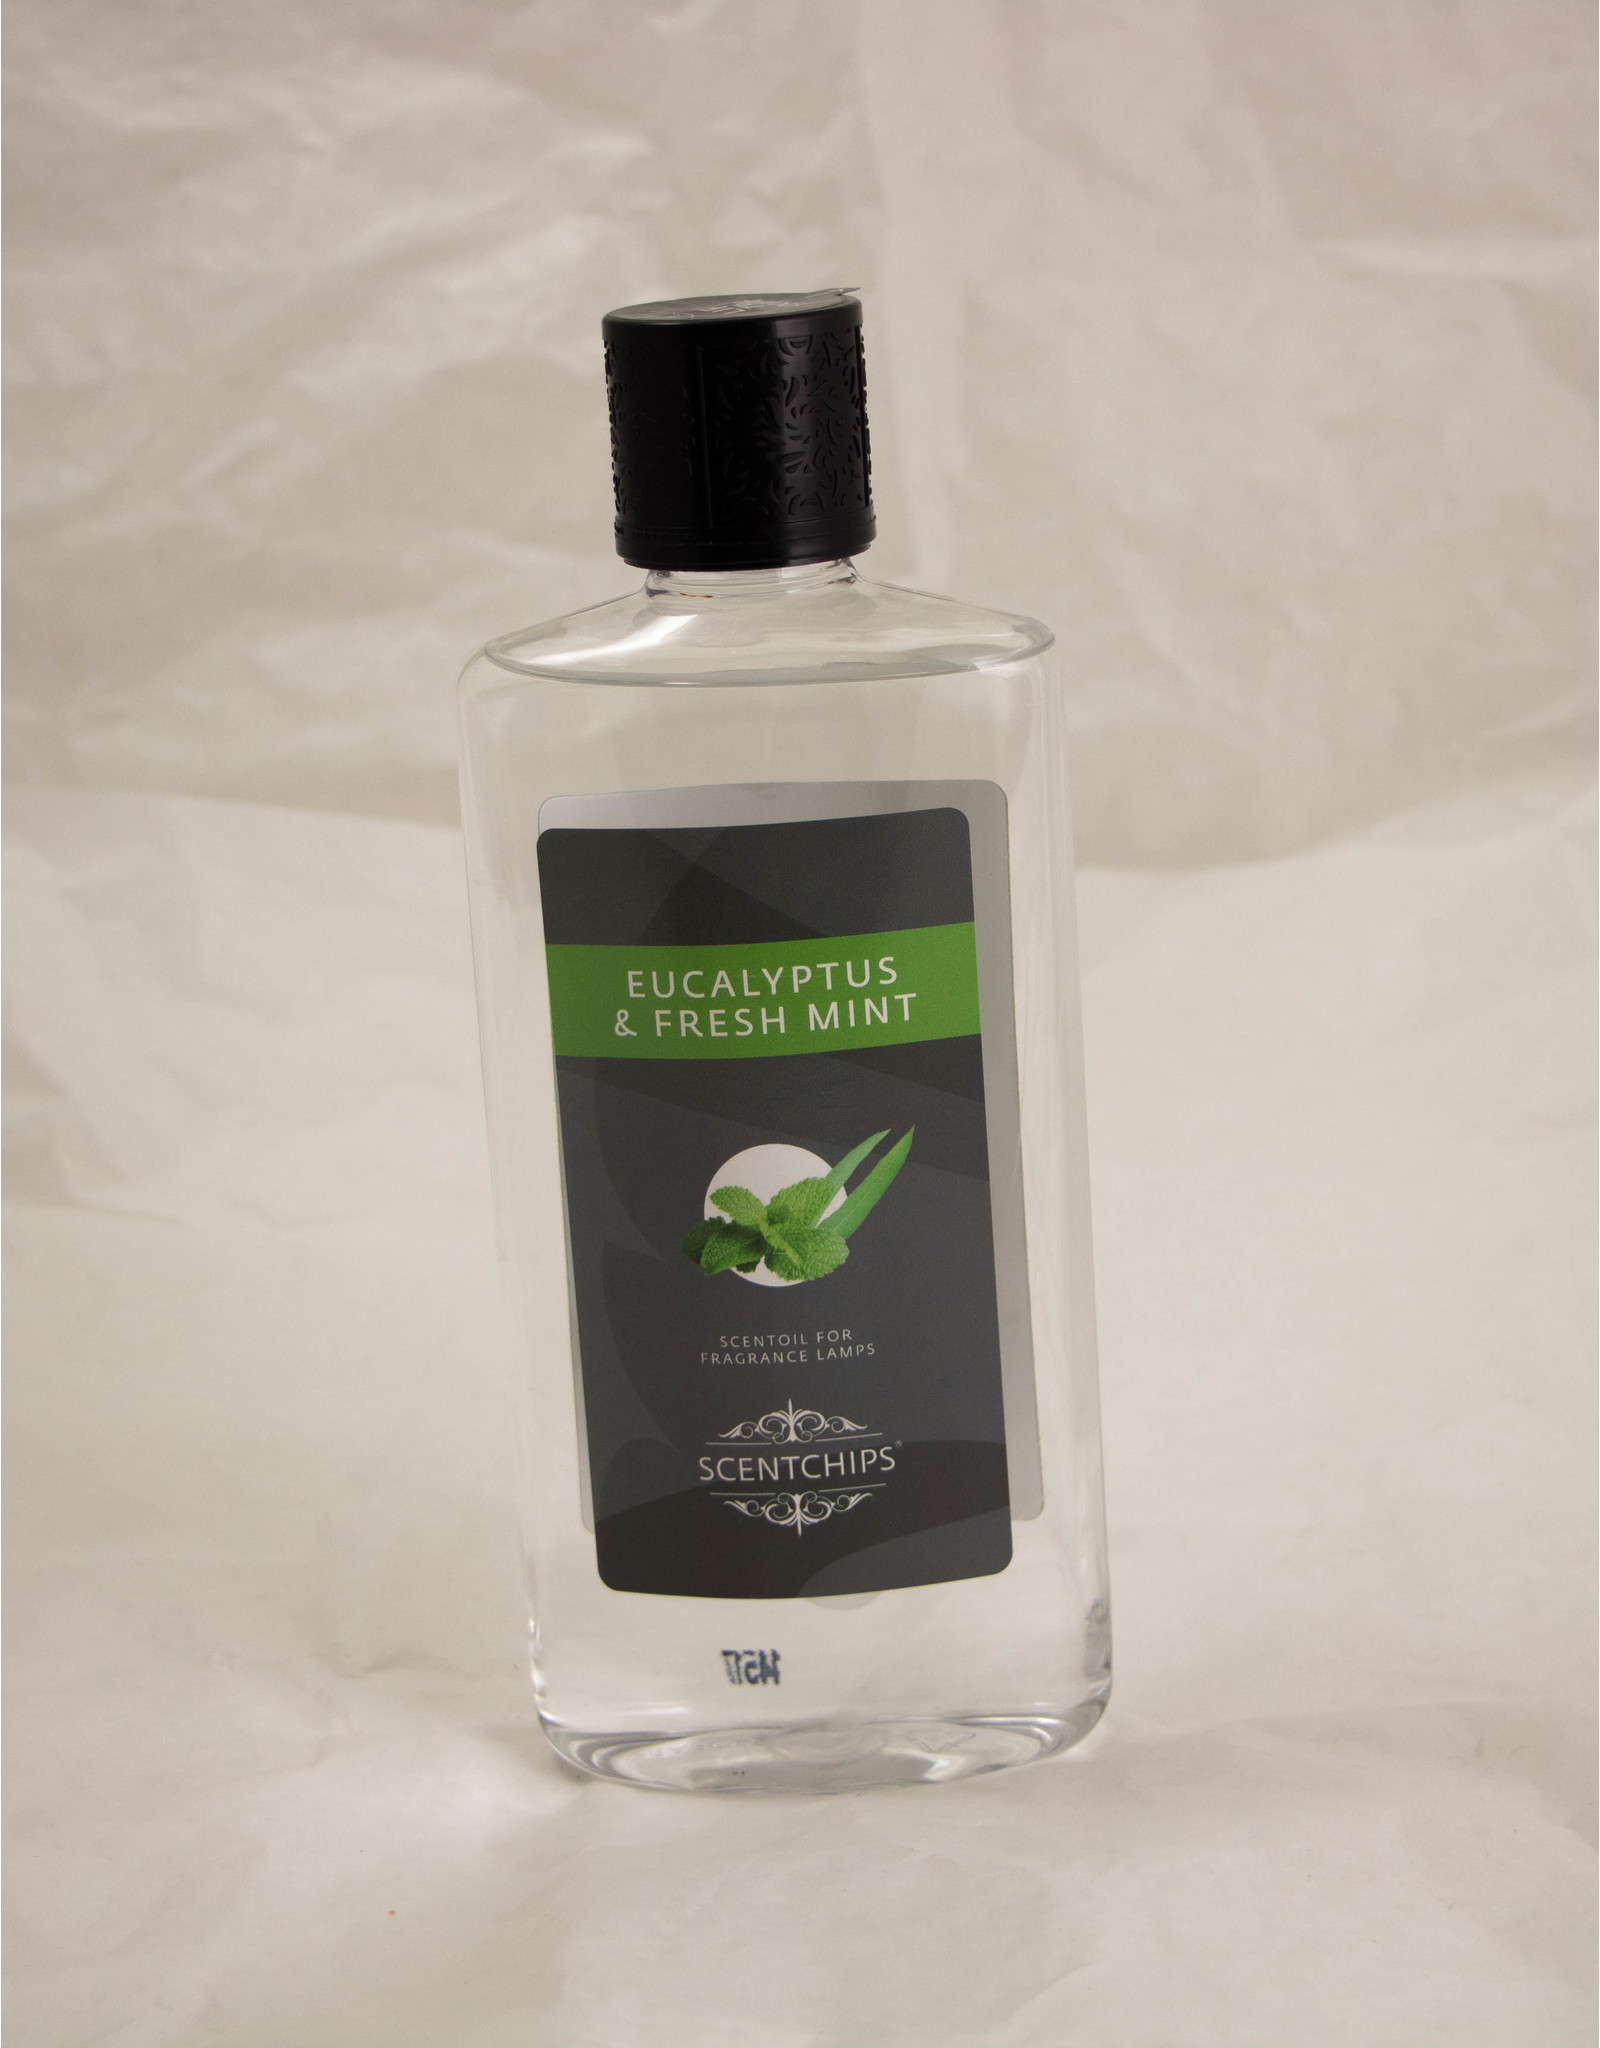 ScentChips Eucalyptus & Fresh Mint 475ml